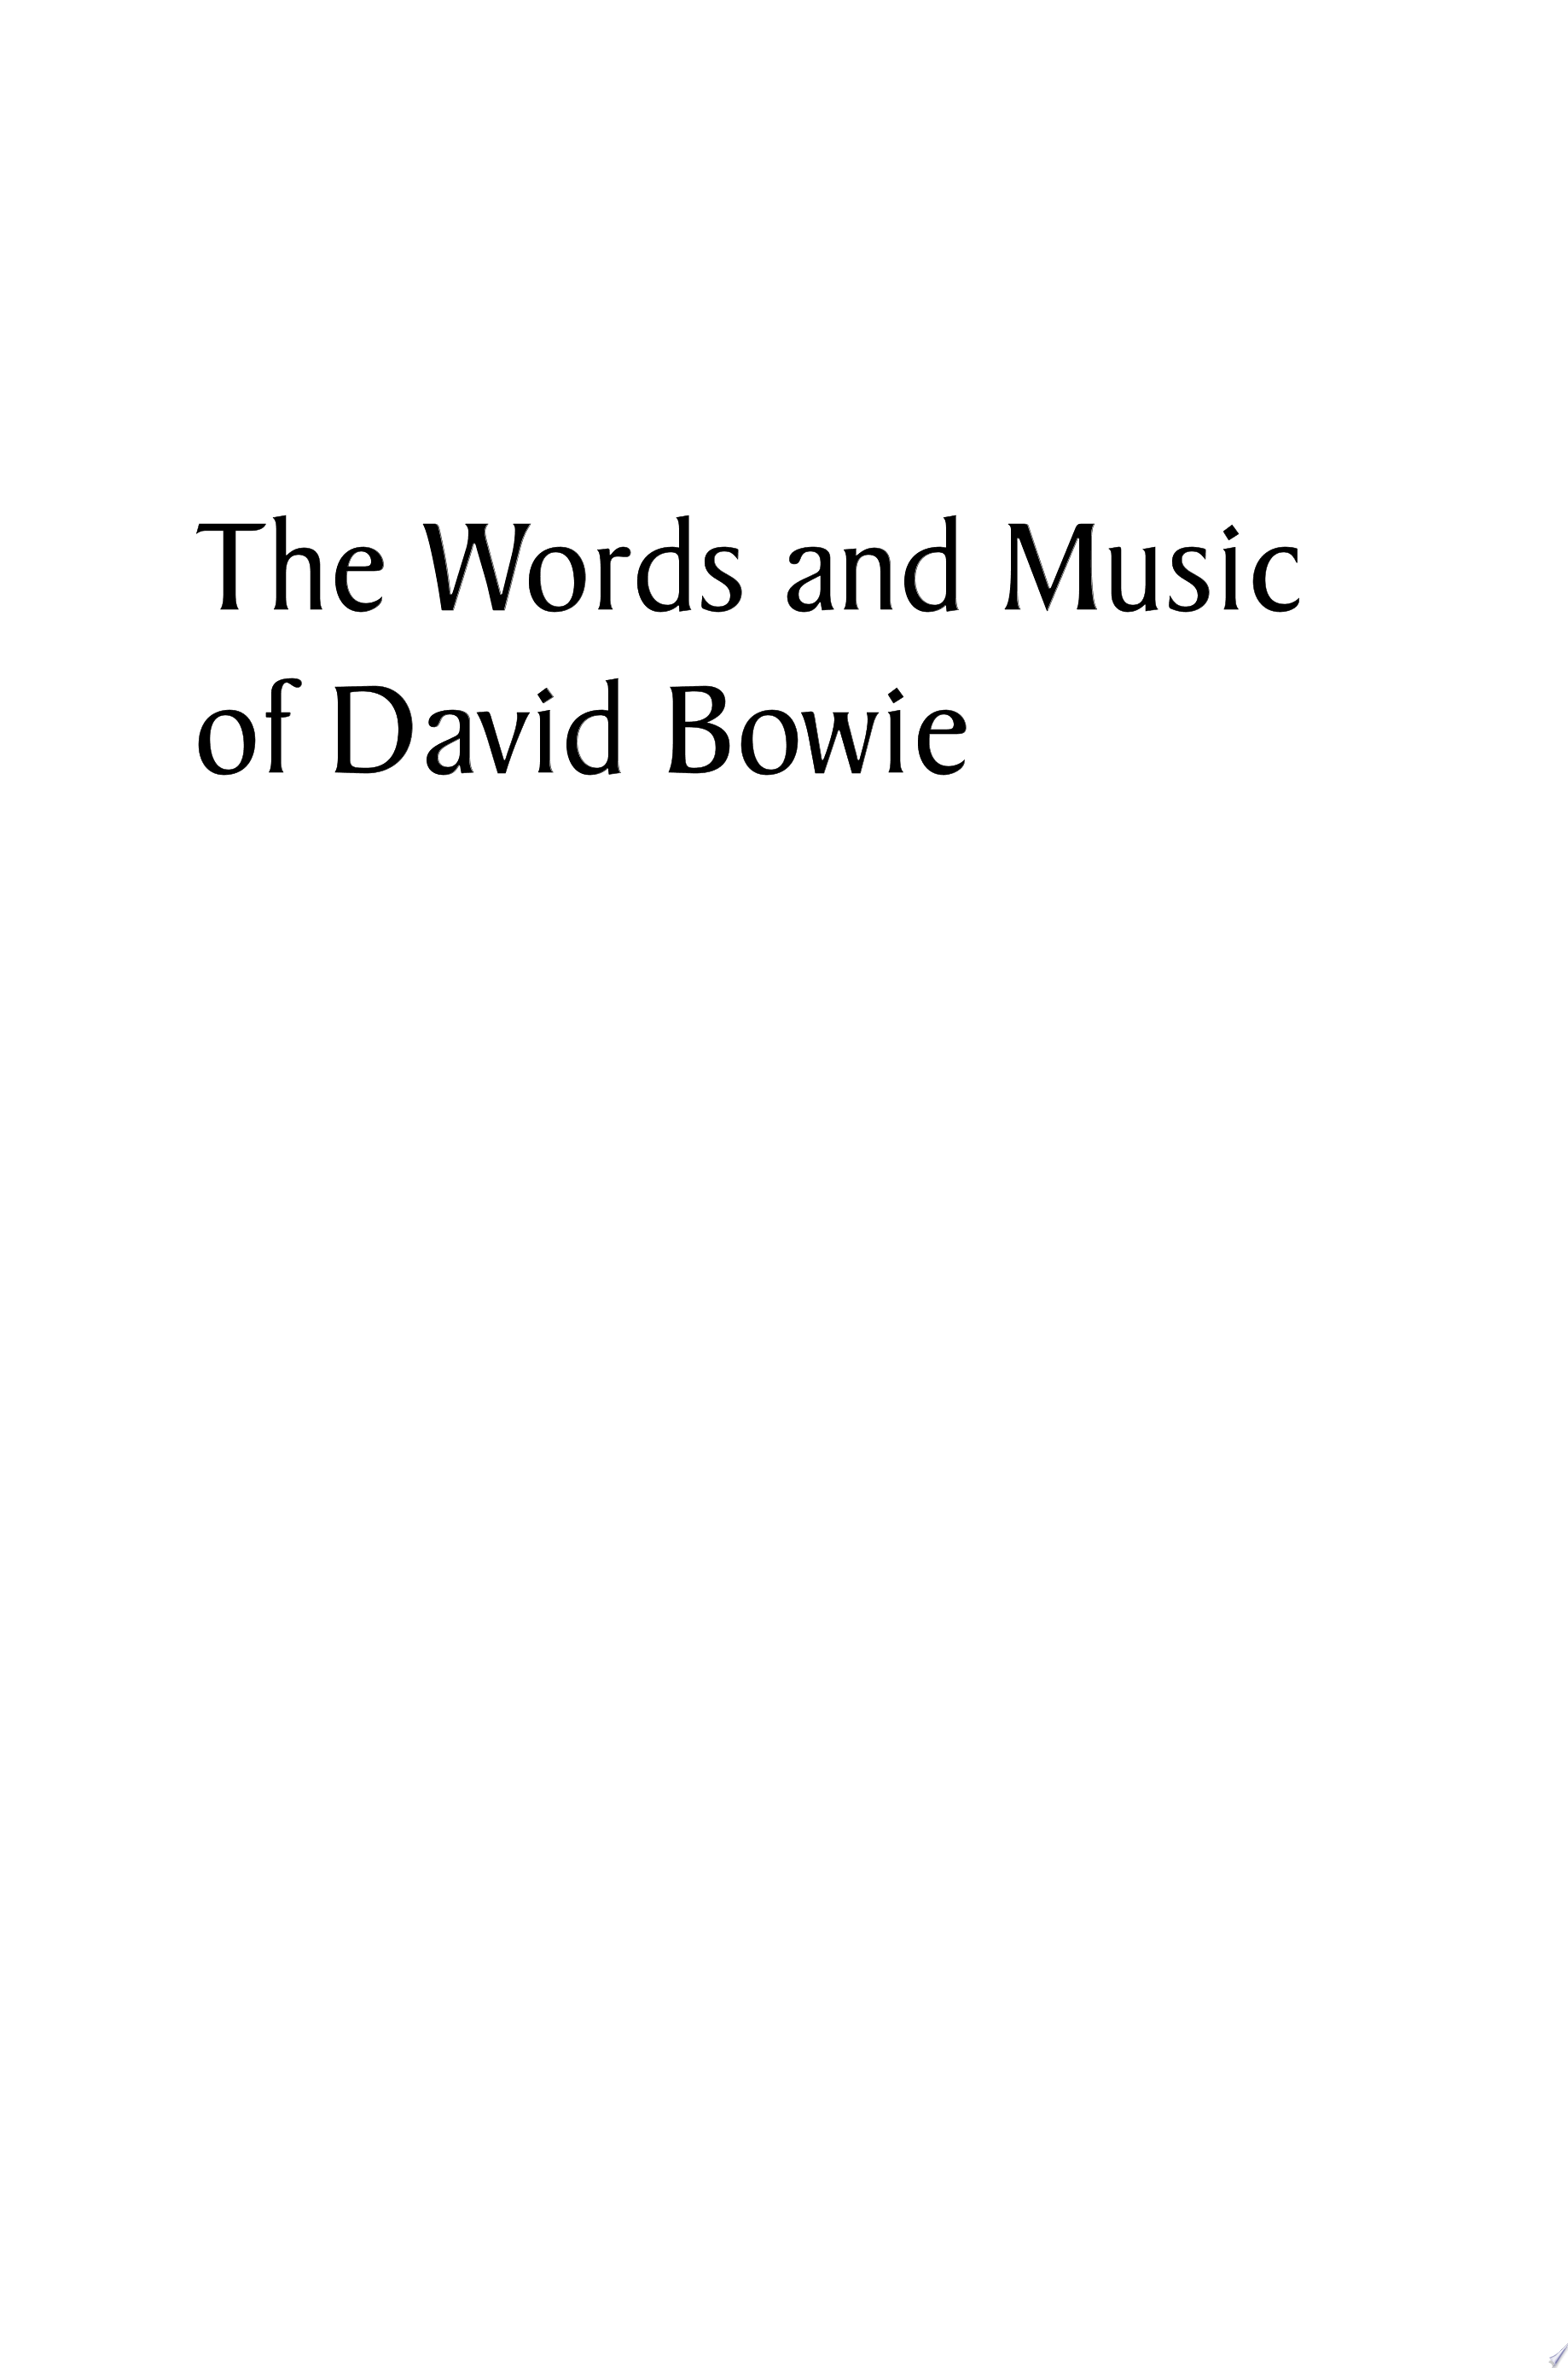 The Words and Music of David Bowie